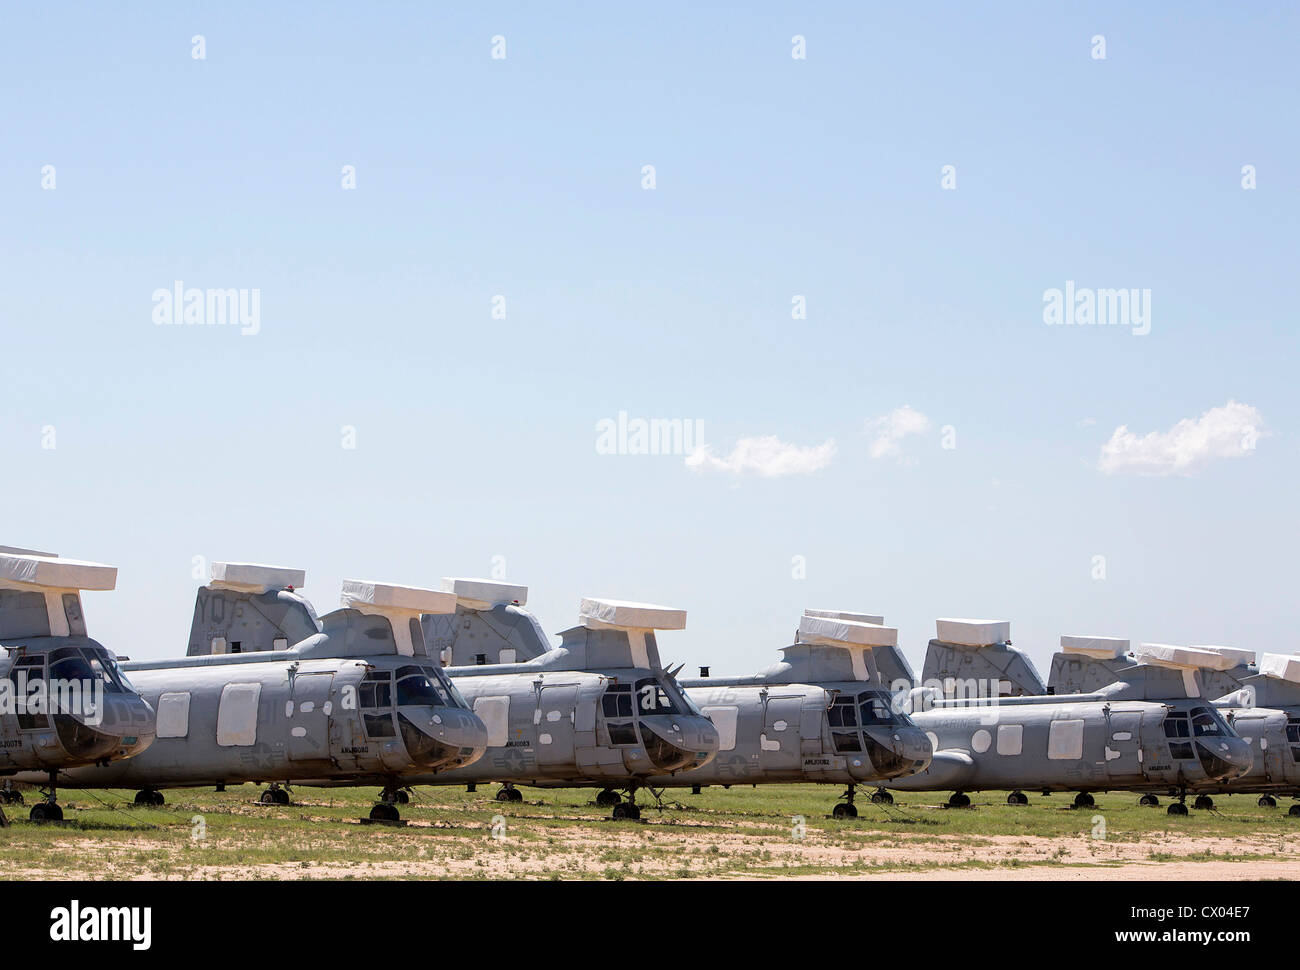 CH-46 Sea Knight helicopters in storage at the 309th Aerospace Maintenance and Regeneration Group at Davis-Monthan - Stock Image